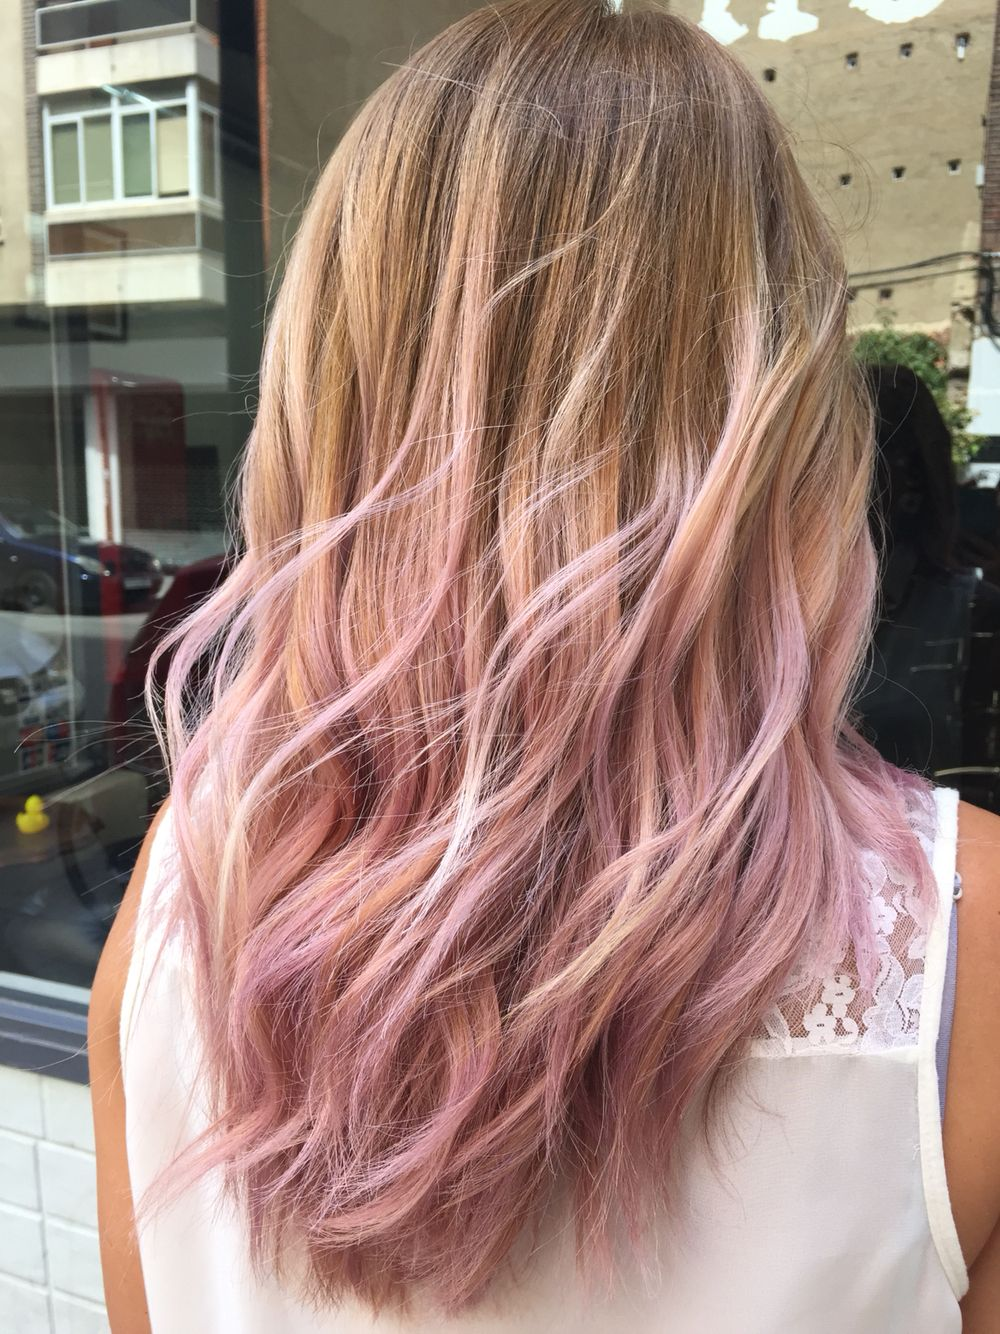 Pastel Pink By The Room Popular Ombre Hair Pinterest Hair